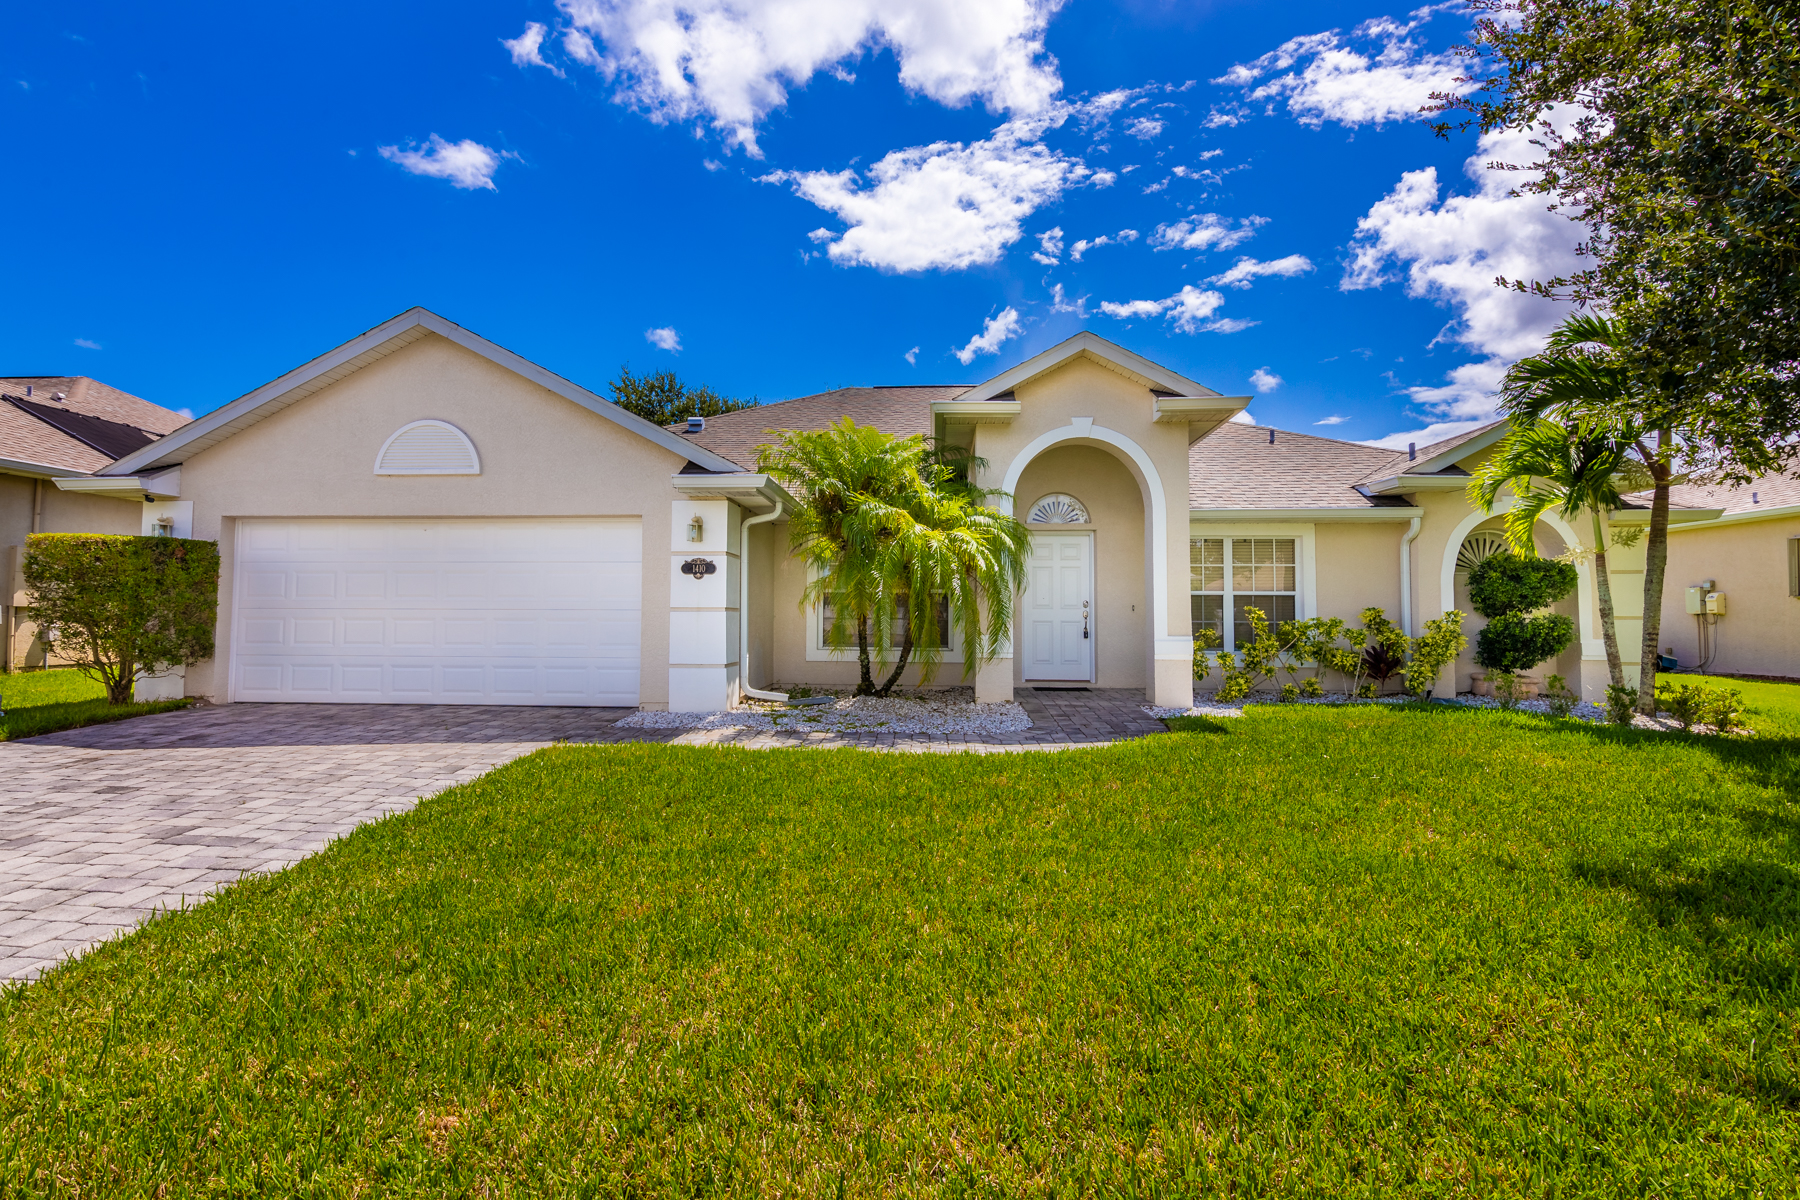 Property for Sale at Well Maintained Home in Centrally Located Tamarind Estates 1410 Tamango Drive West Melbourne, Florida 32904 United States